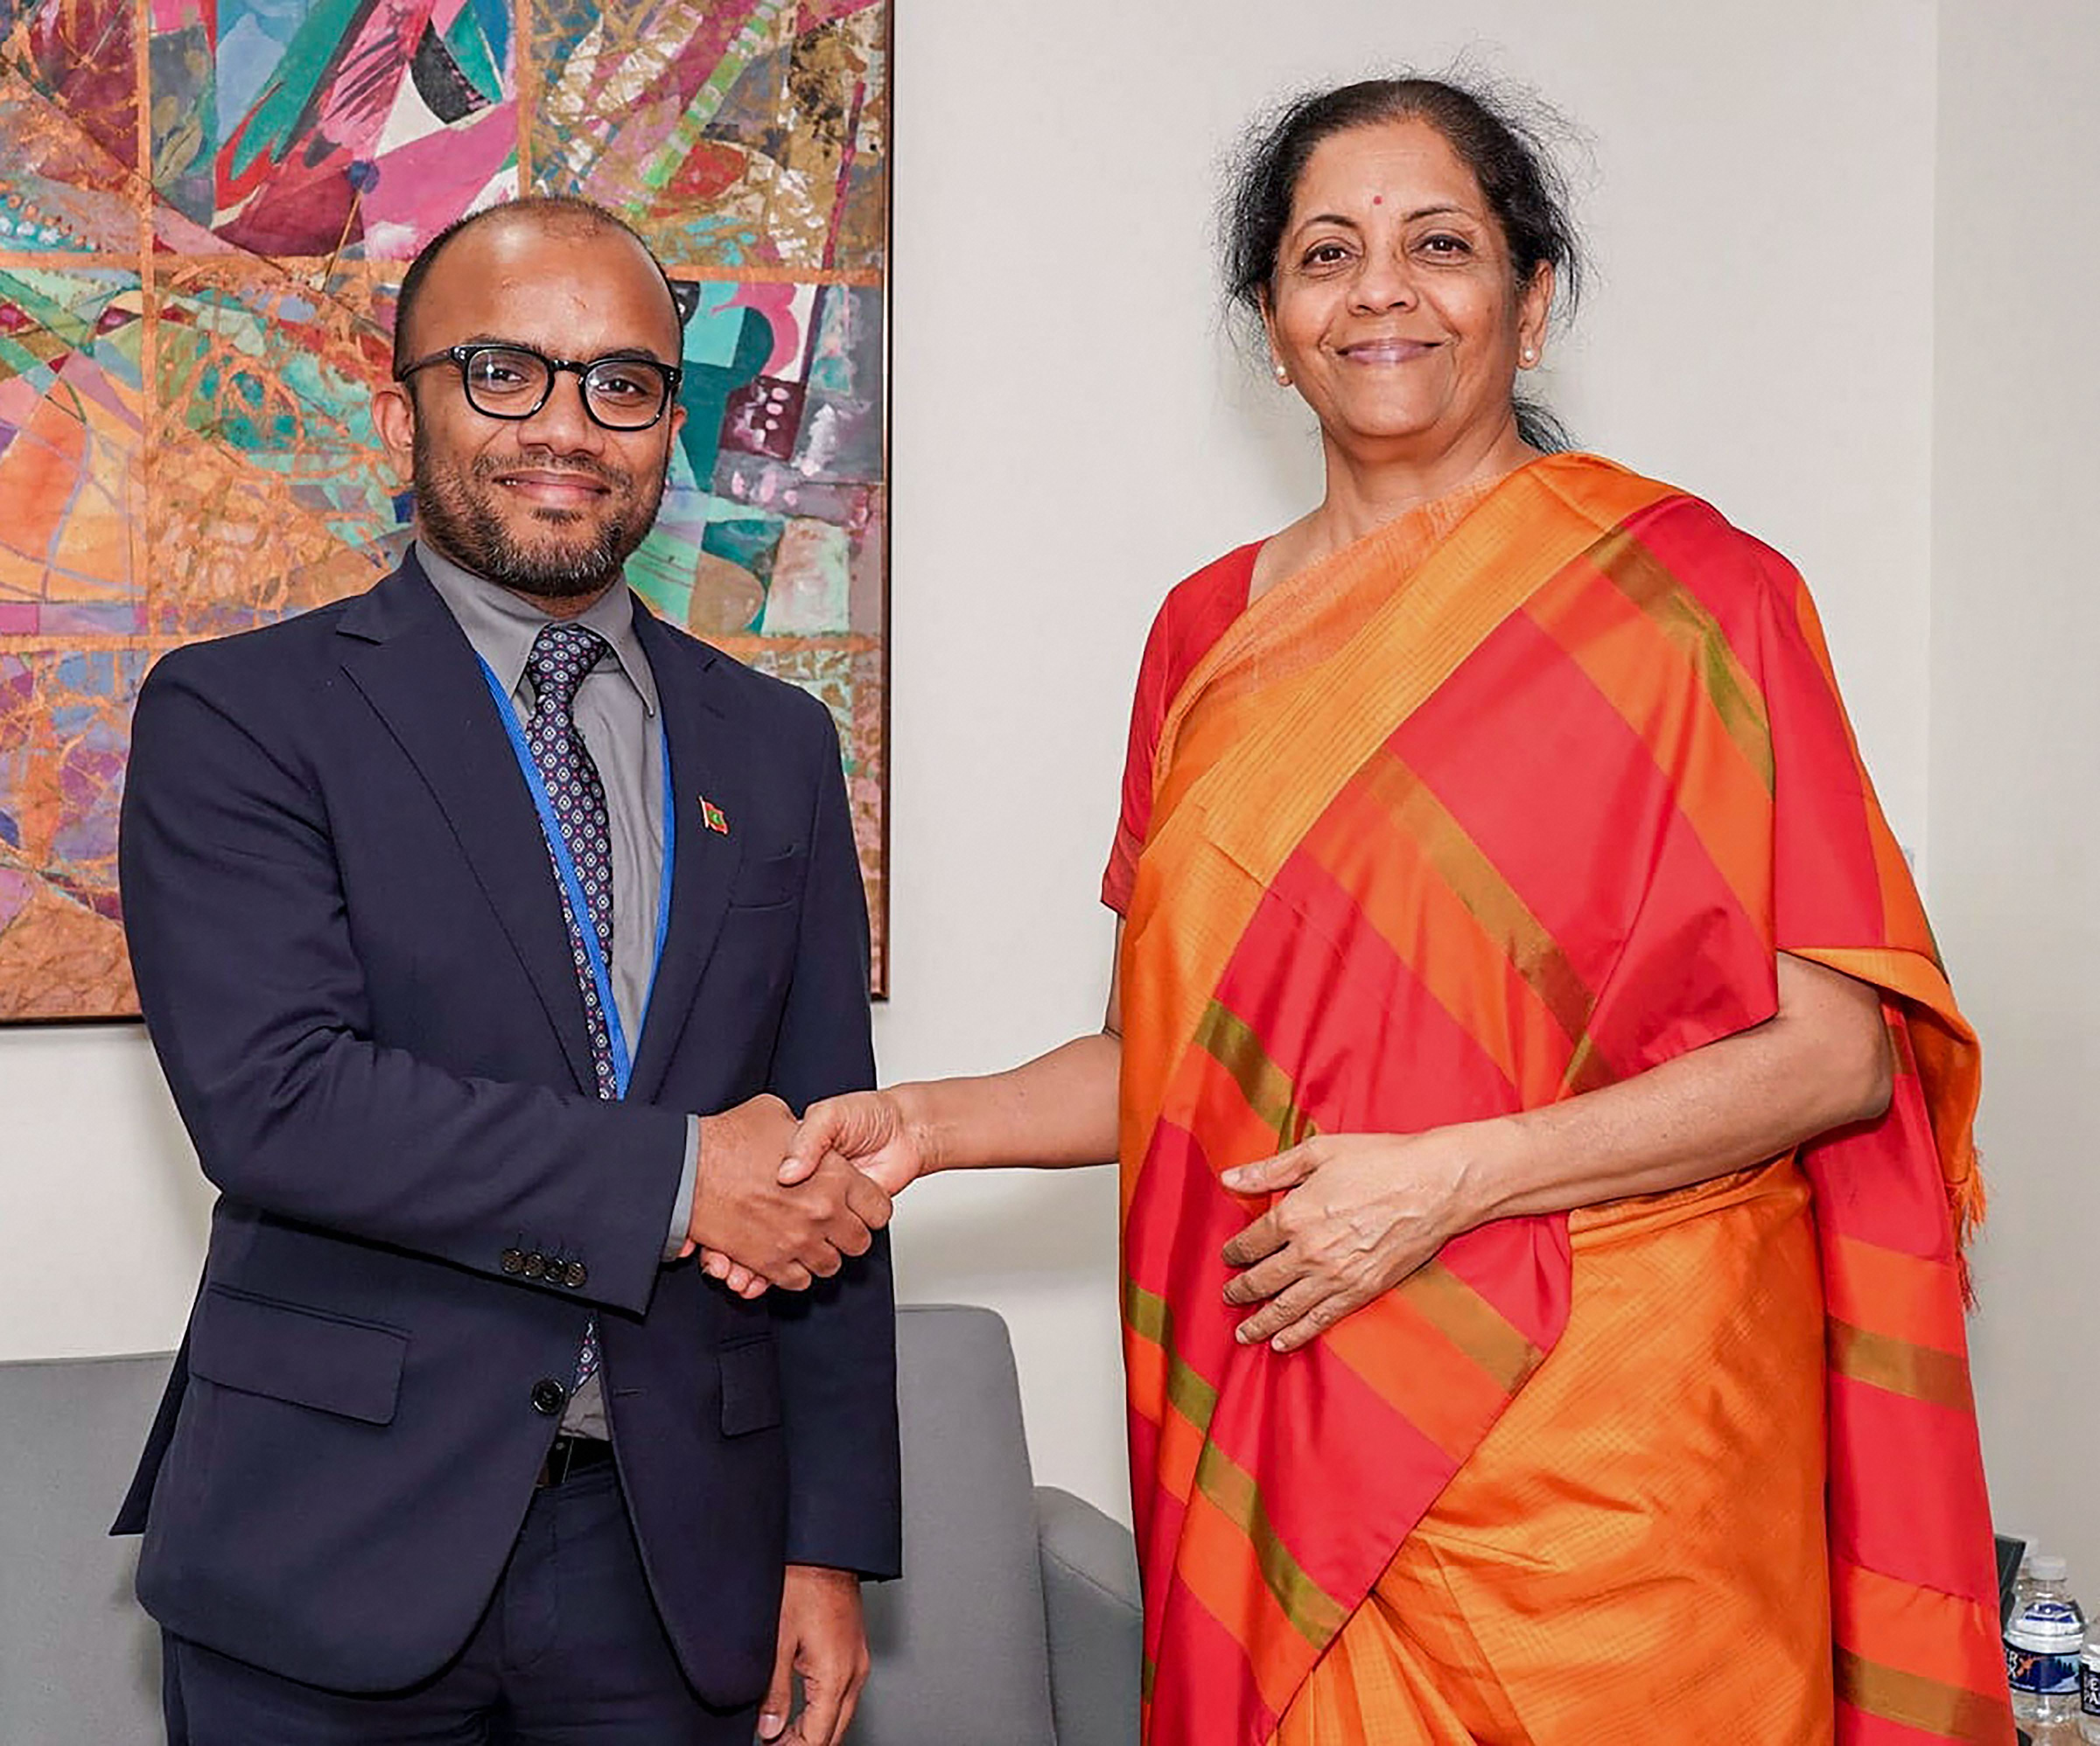 Union minister for finance and corporate affairs Nirmala Sitharaman meets Maldives finance minister Ibrahim Ameer, on the sidelines of the IMF-WB Annual Meetings 2019, in Washington DC, USA, Friday, October 18, 2019.